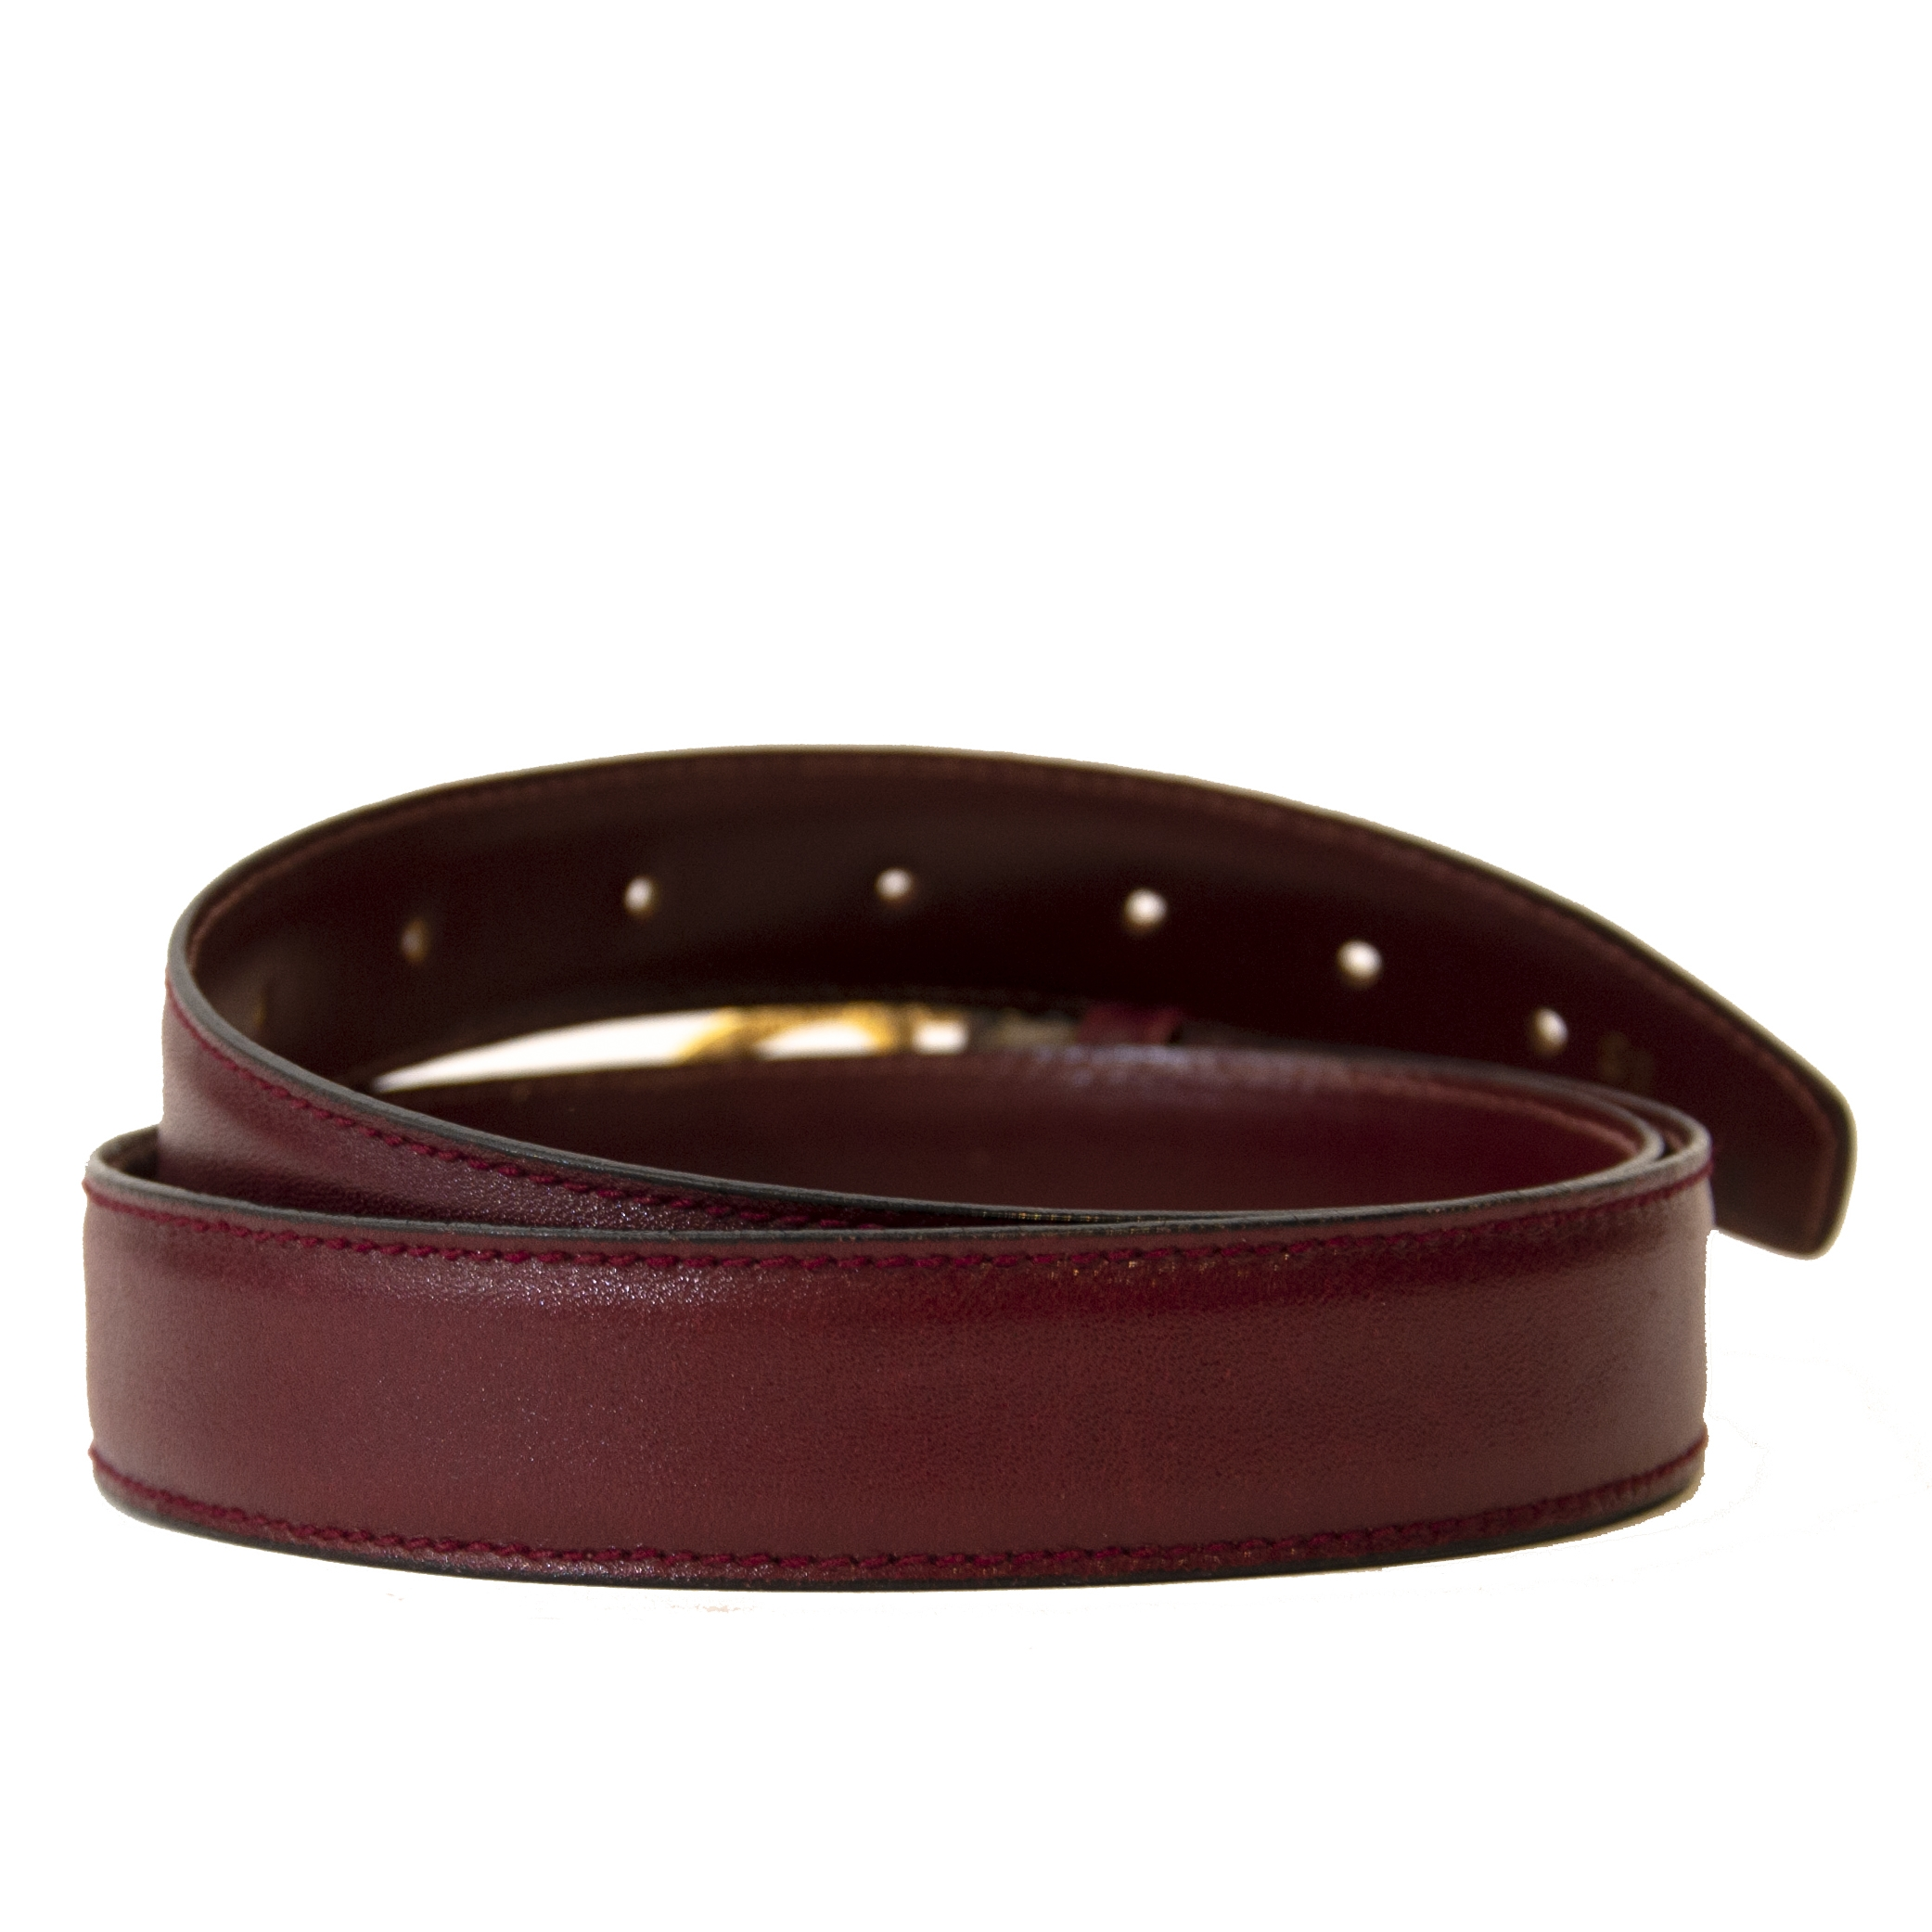 58f5ed0dc88 ... Authentic second-hand vintage Gucci Burgundy GG Belt buy online webshop  LabelLOV